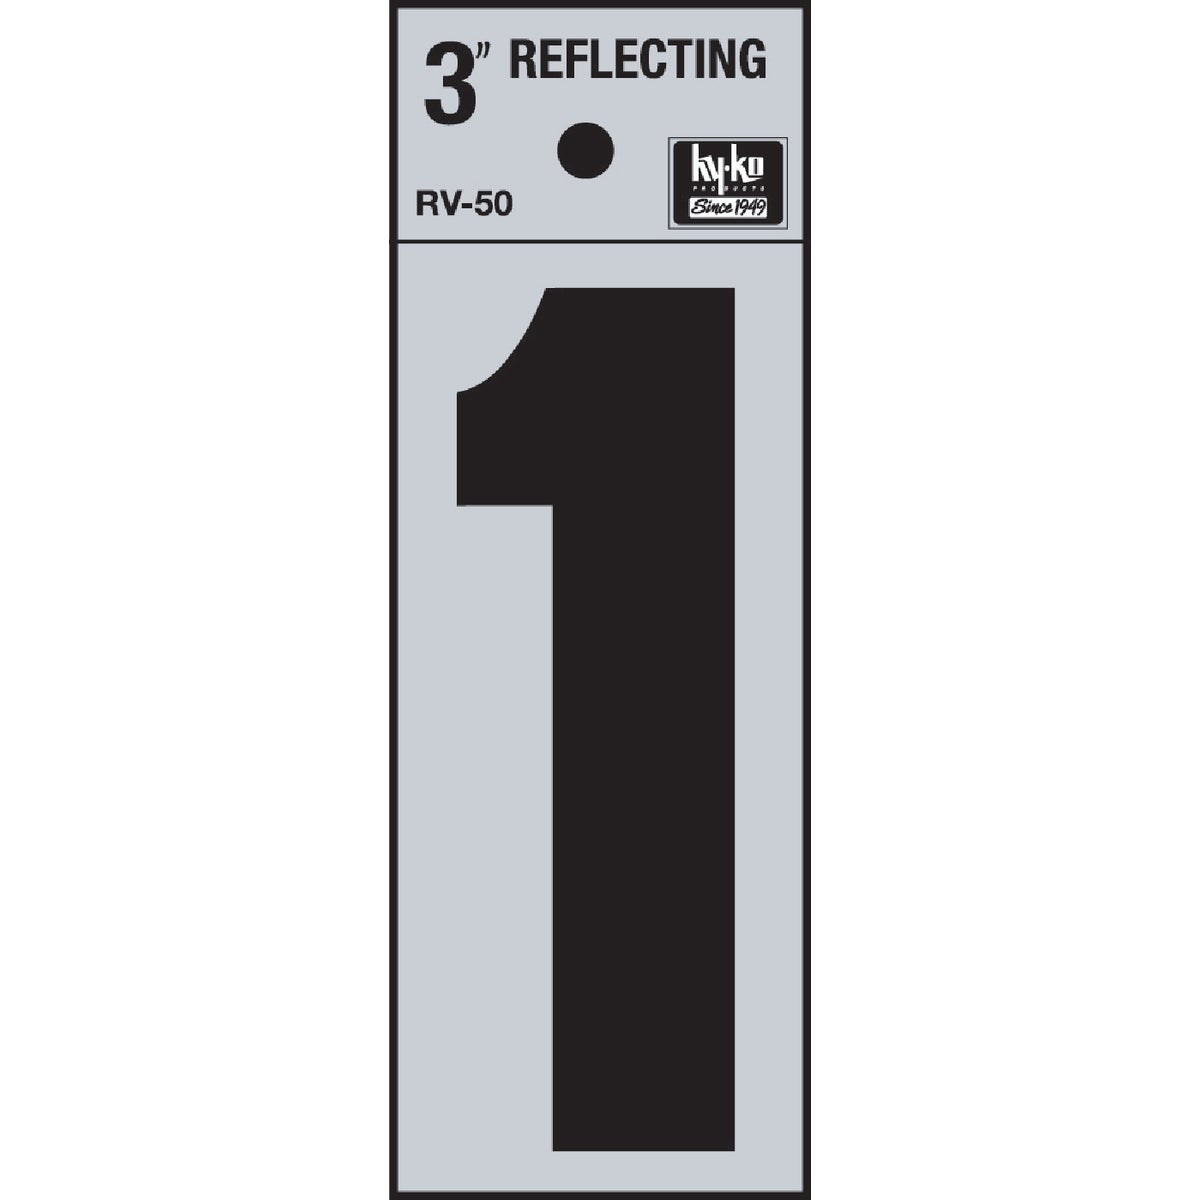 "3"" REFLECT NUMBER 1 - RV-50-1 by Hy Ko Prods Co"